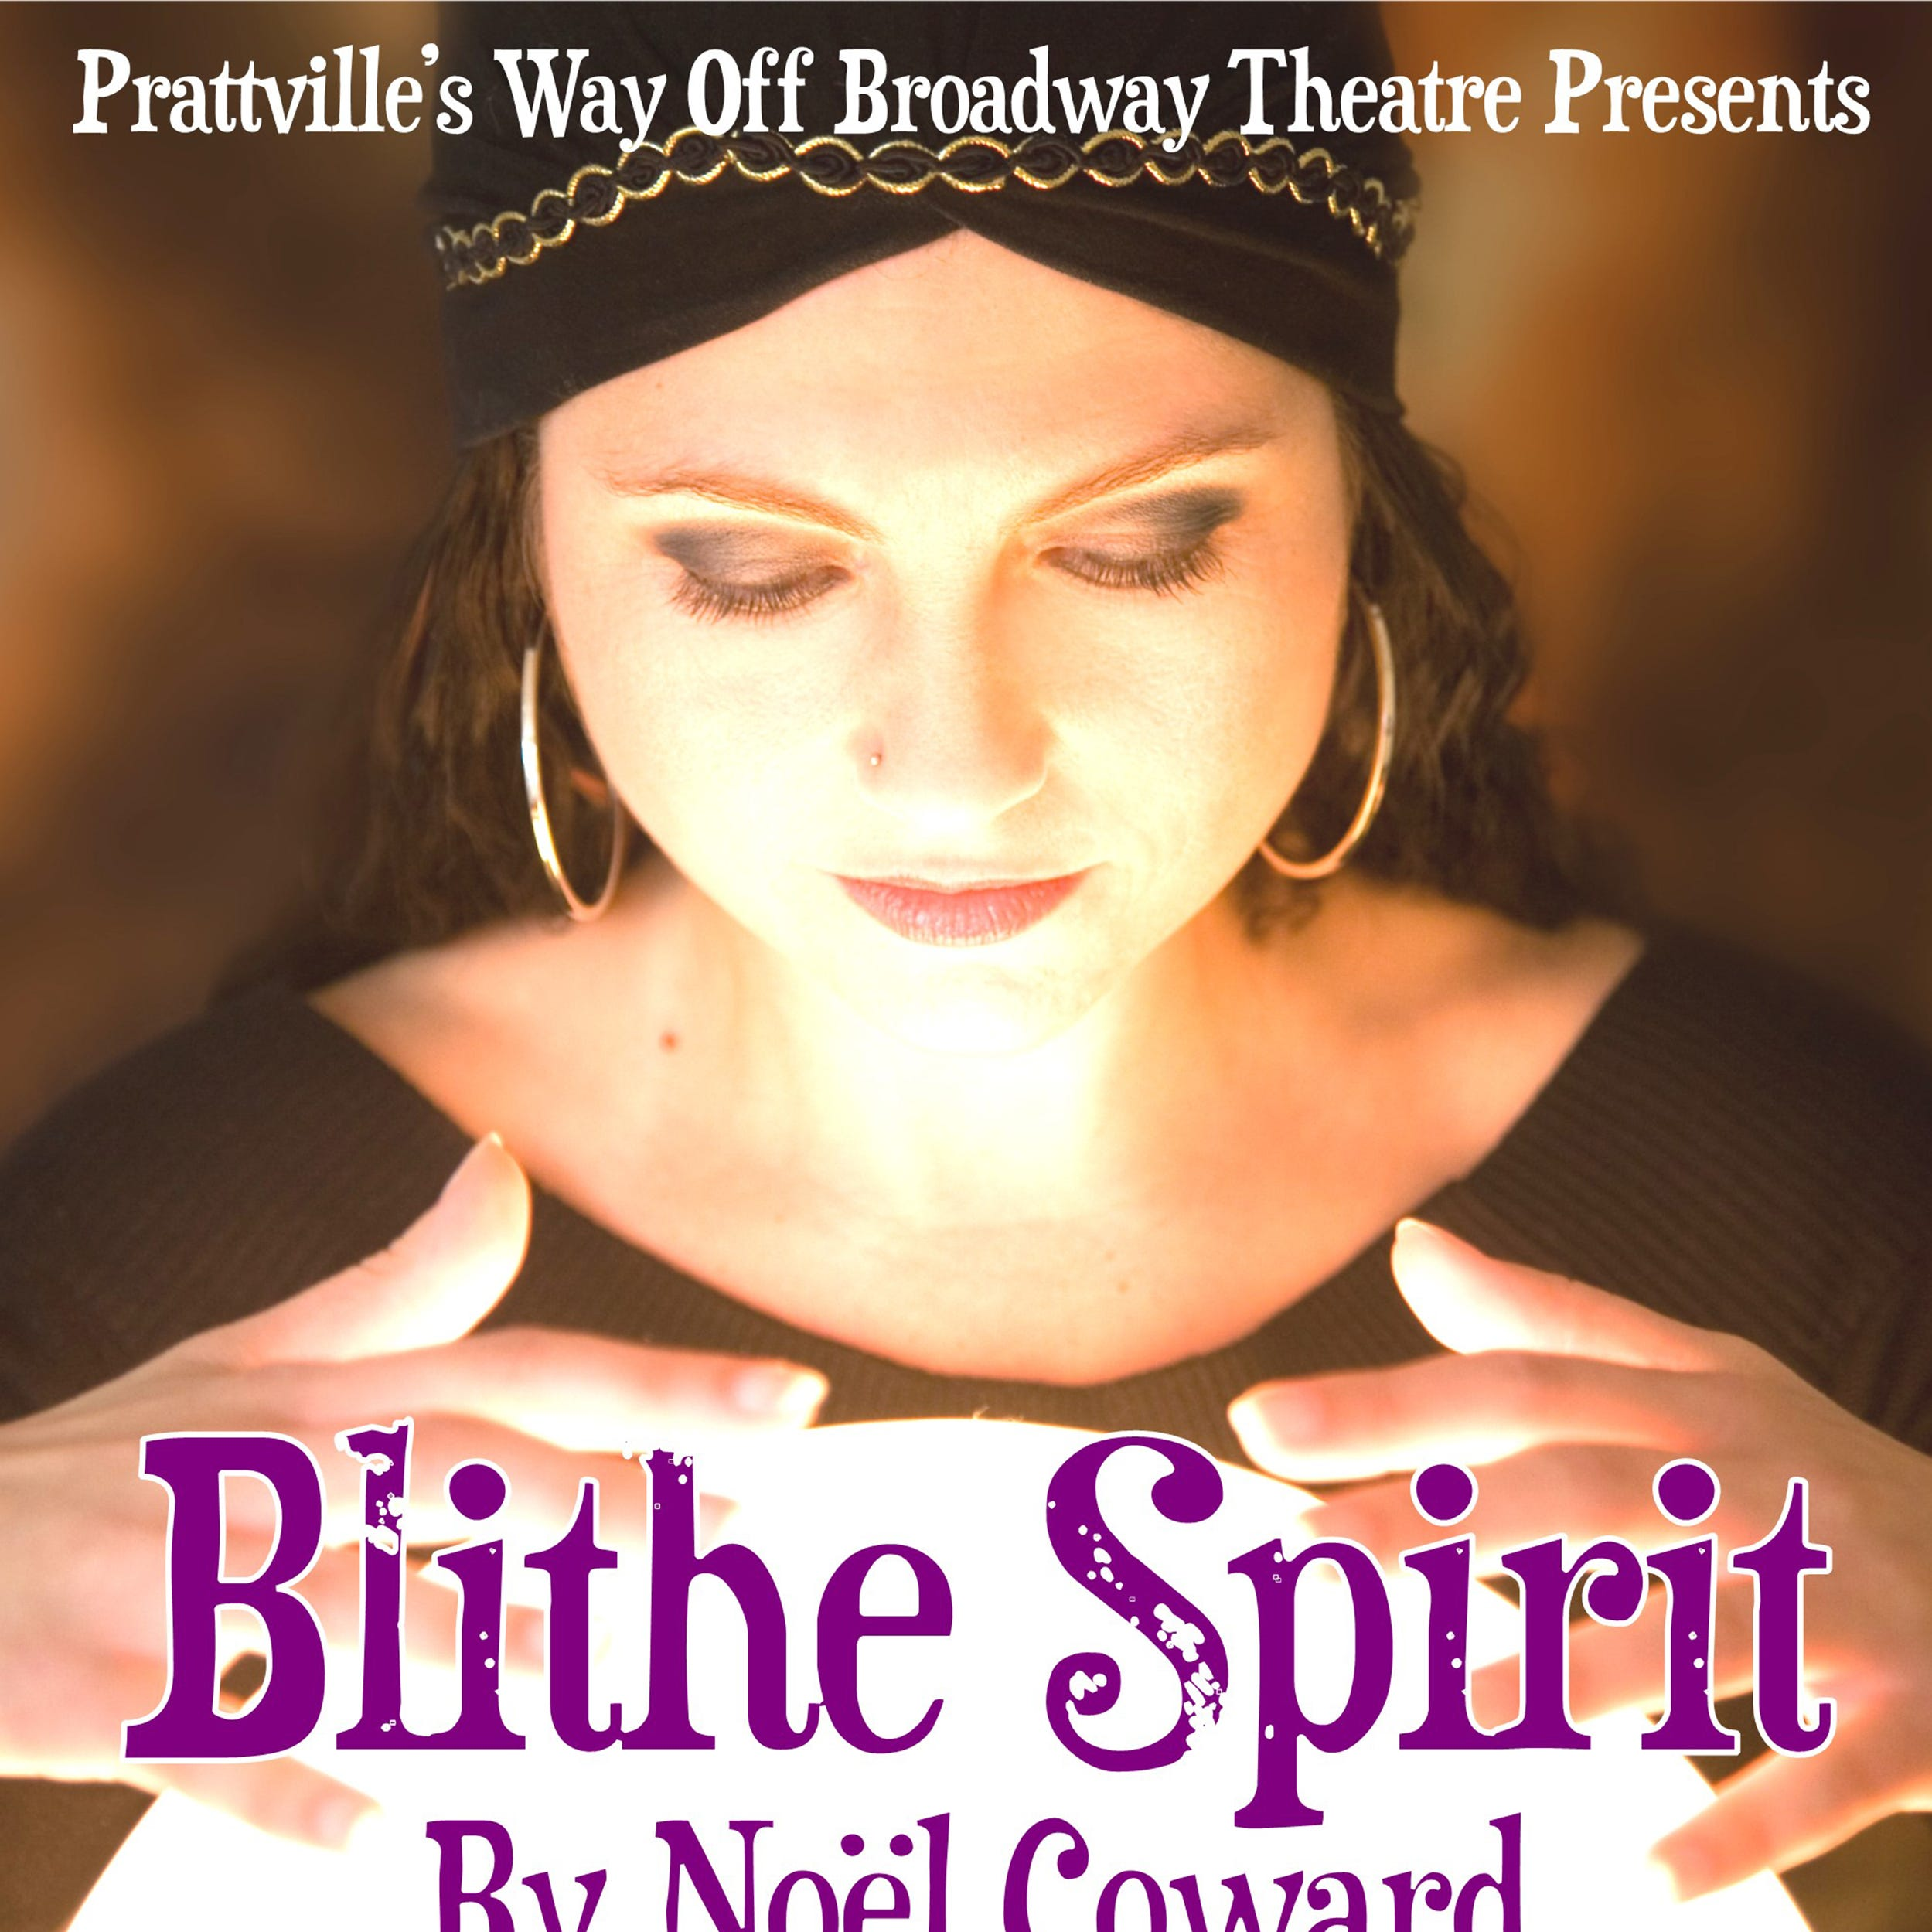 Noel Coward's Blithe Spirit opens Thursday in Prattville